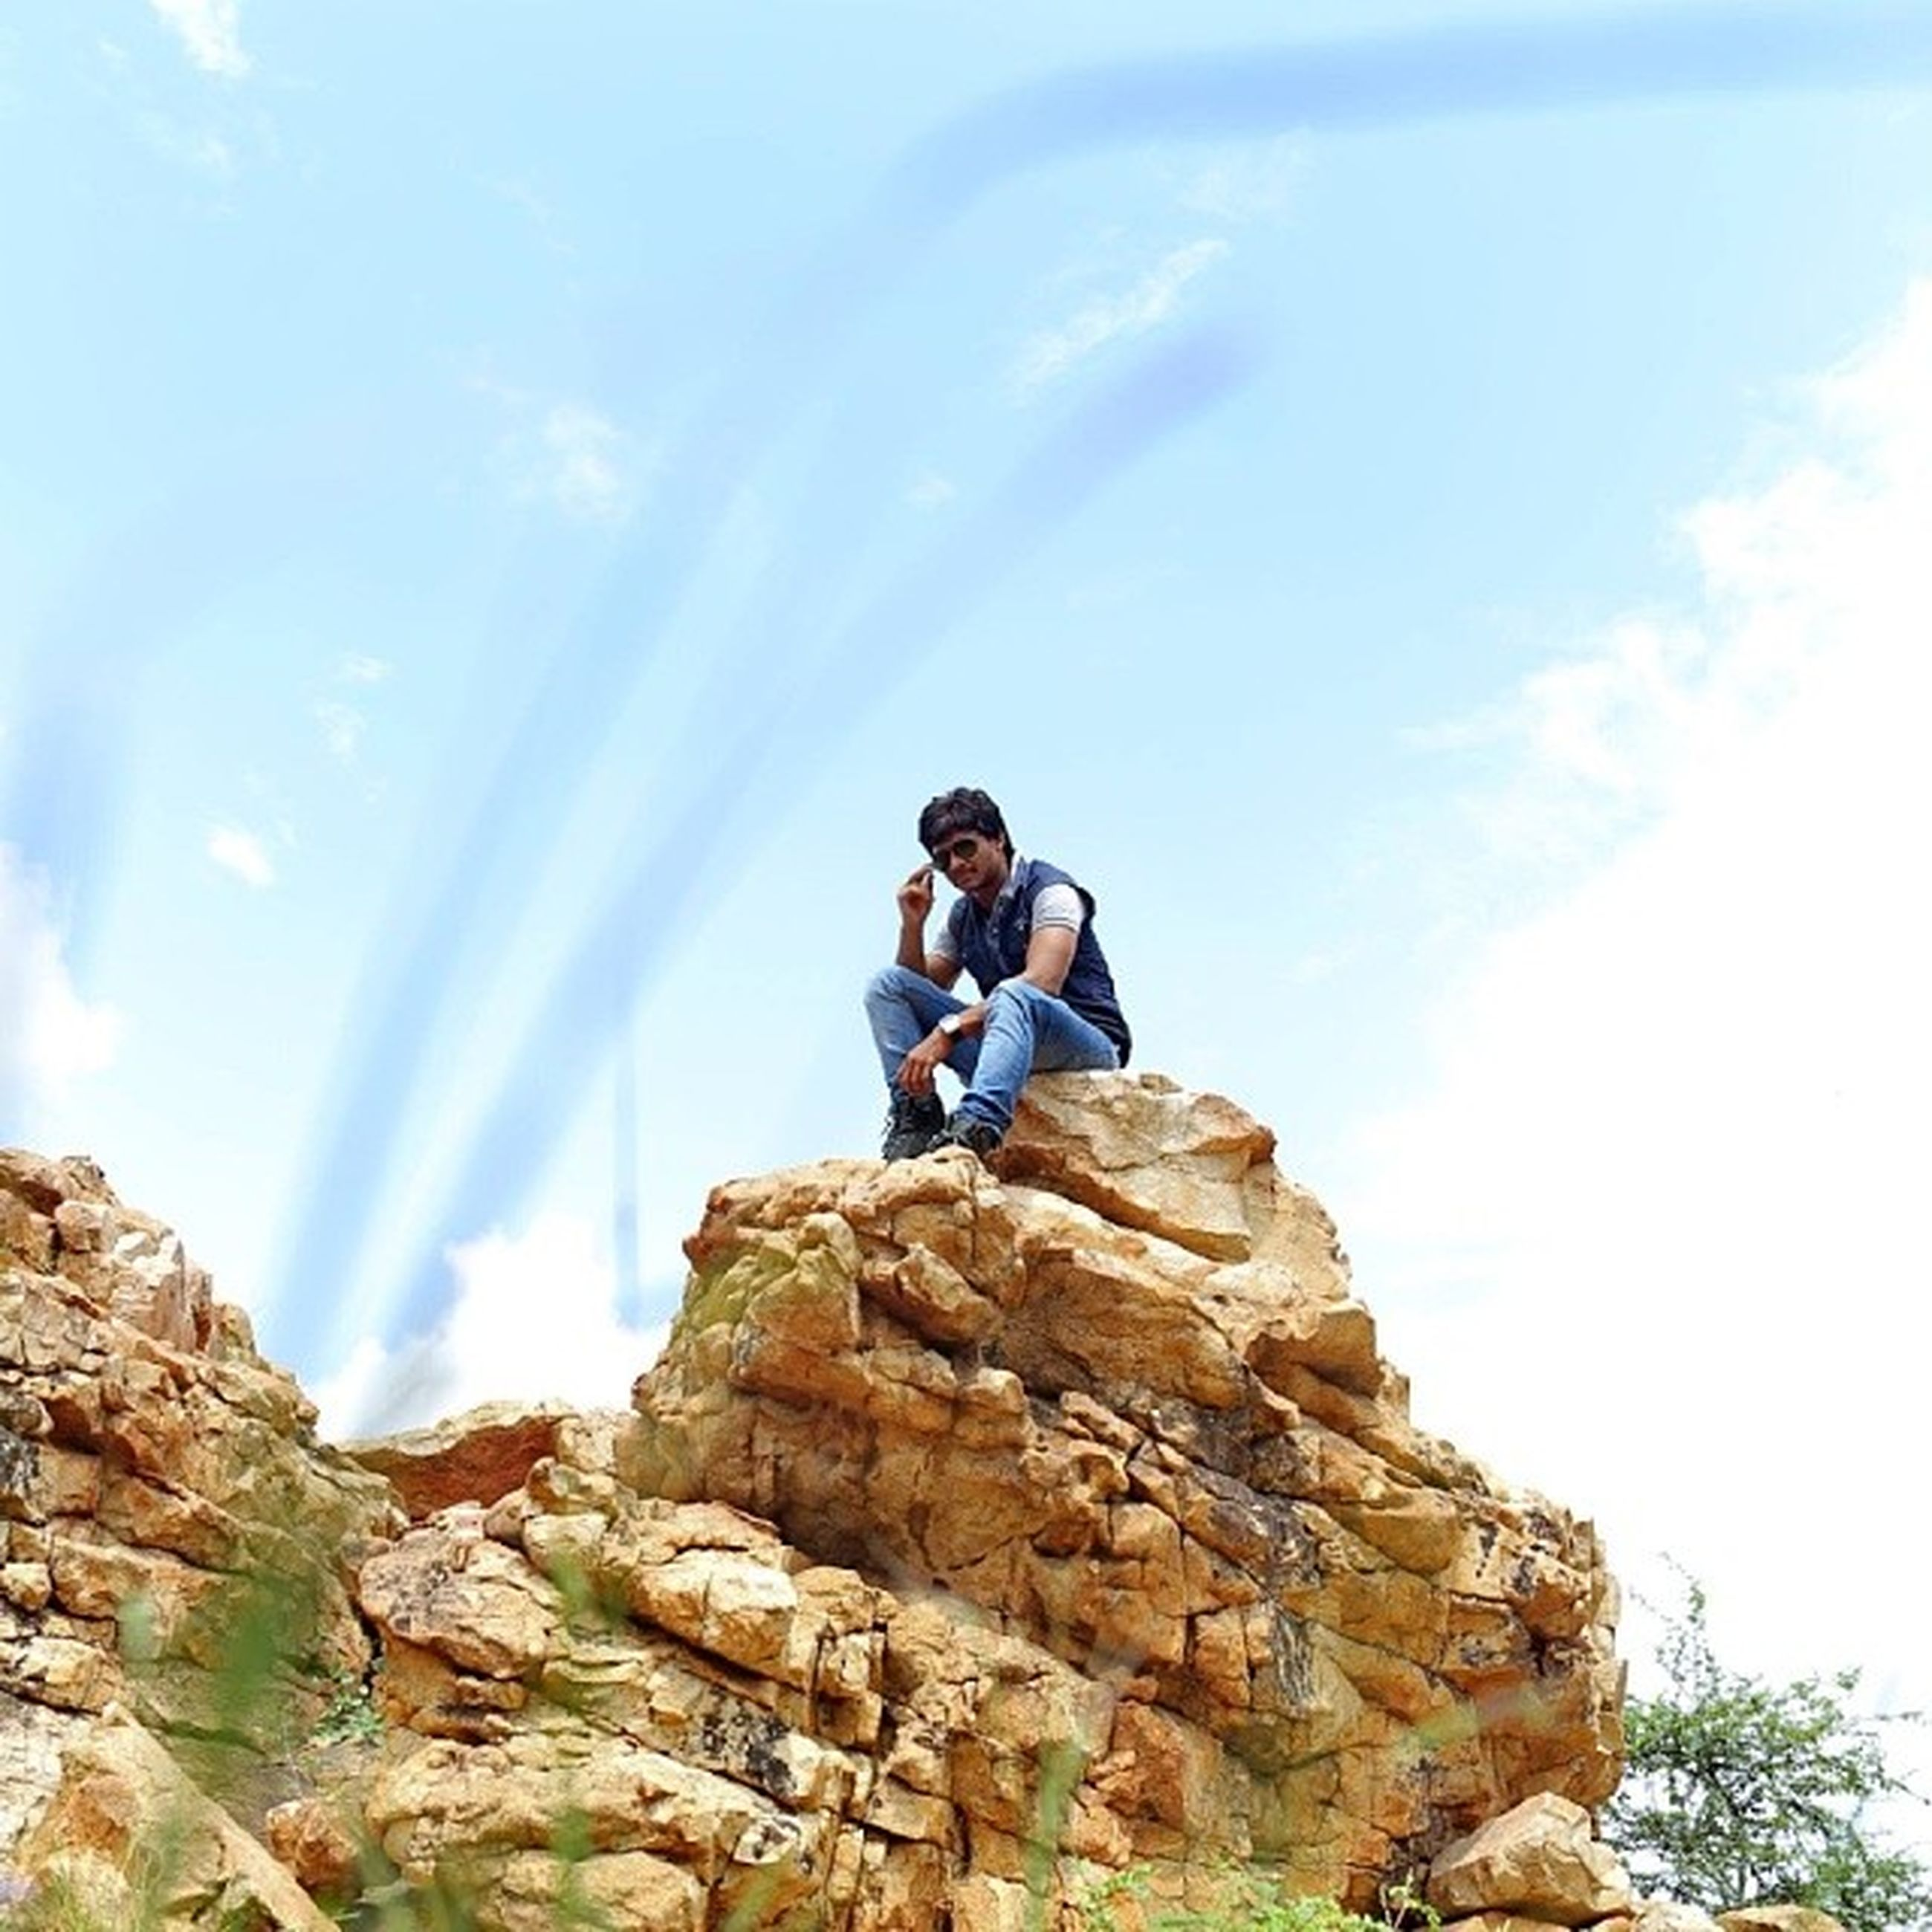 lifestyles, leisure activity, rock - object, sky, full length, young adult, casual clothing, sitting, men, young men, rock formation, low angle view, mountain, nature, standing, photography themes